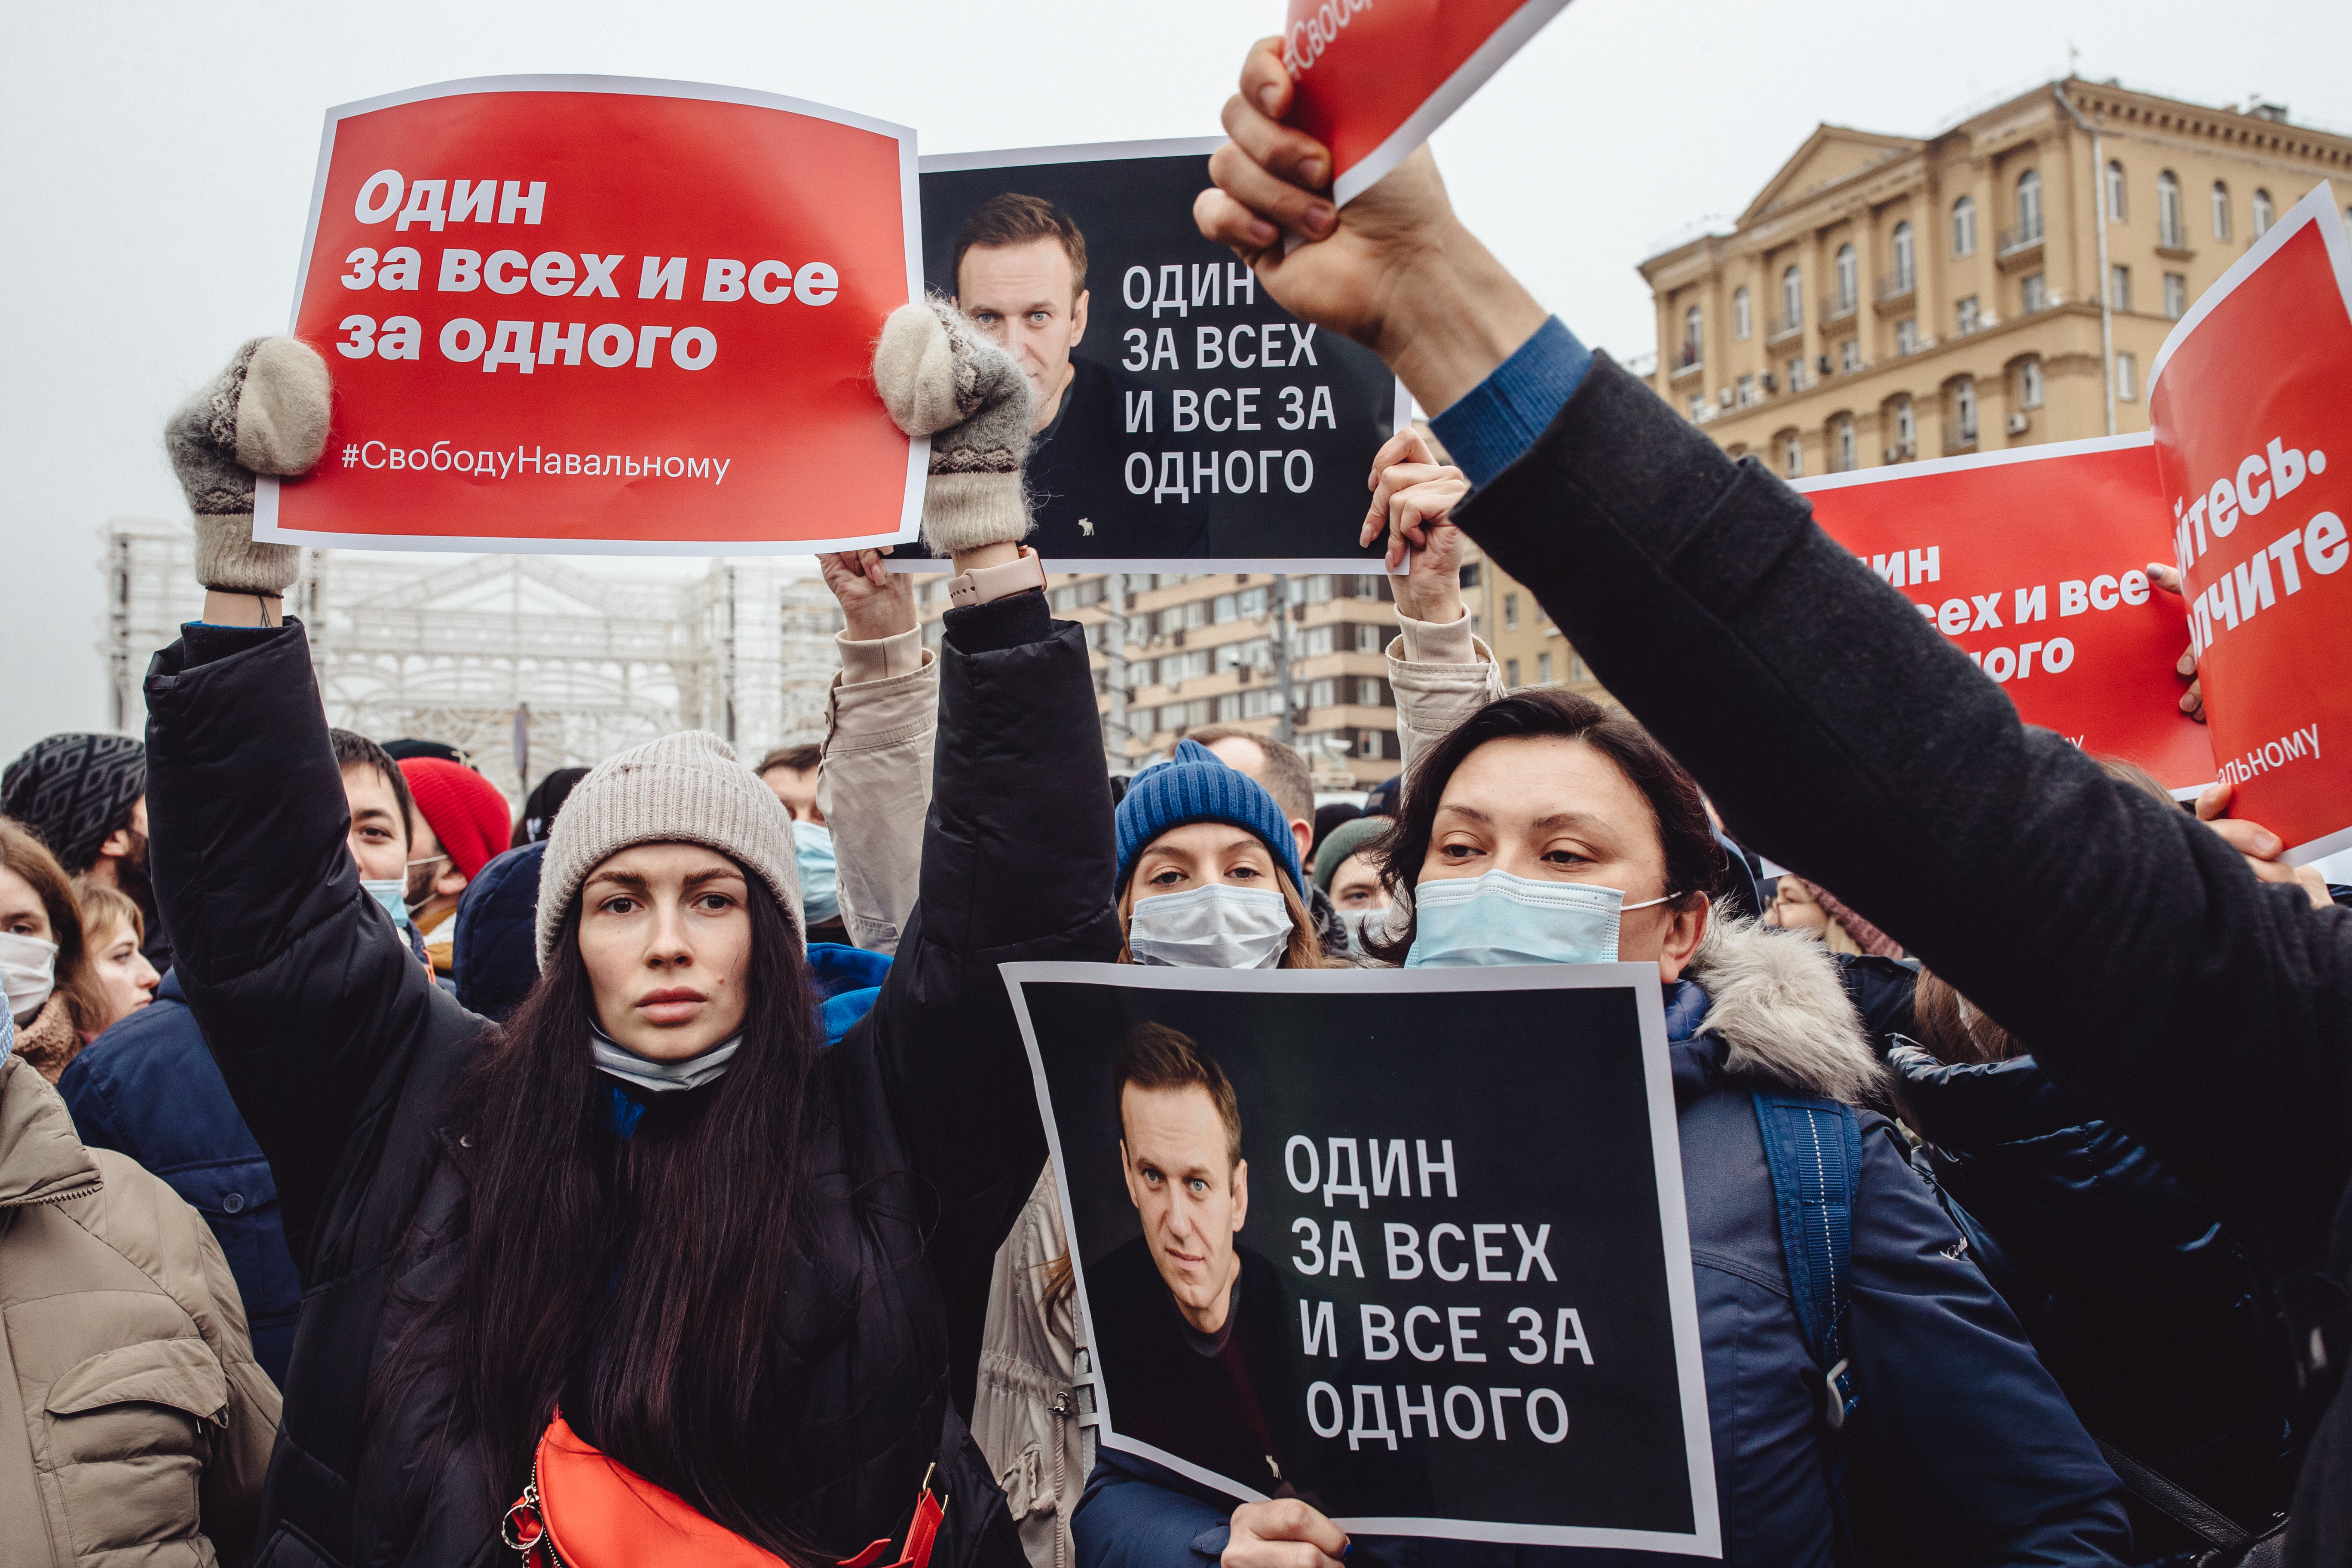 People gathered to protest against Vladimir Putin's government at Pushkin Square in Moscow, Russia. (Photo by Getty Images/Getty Images)